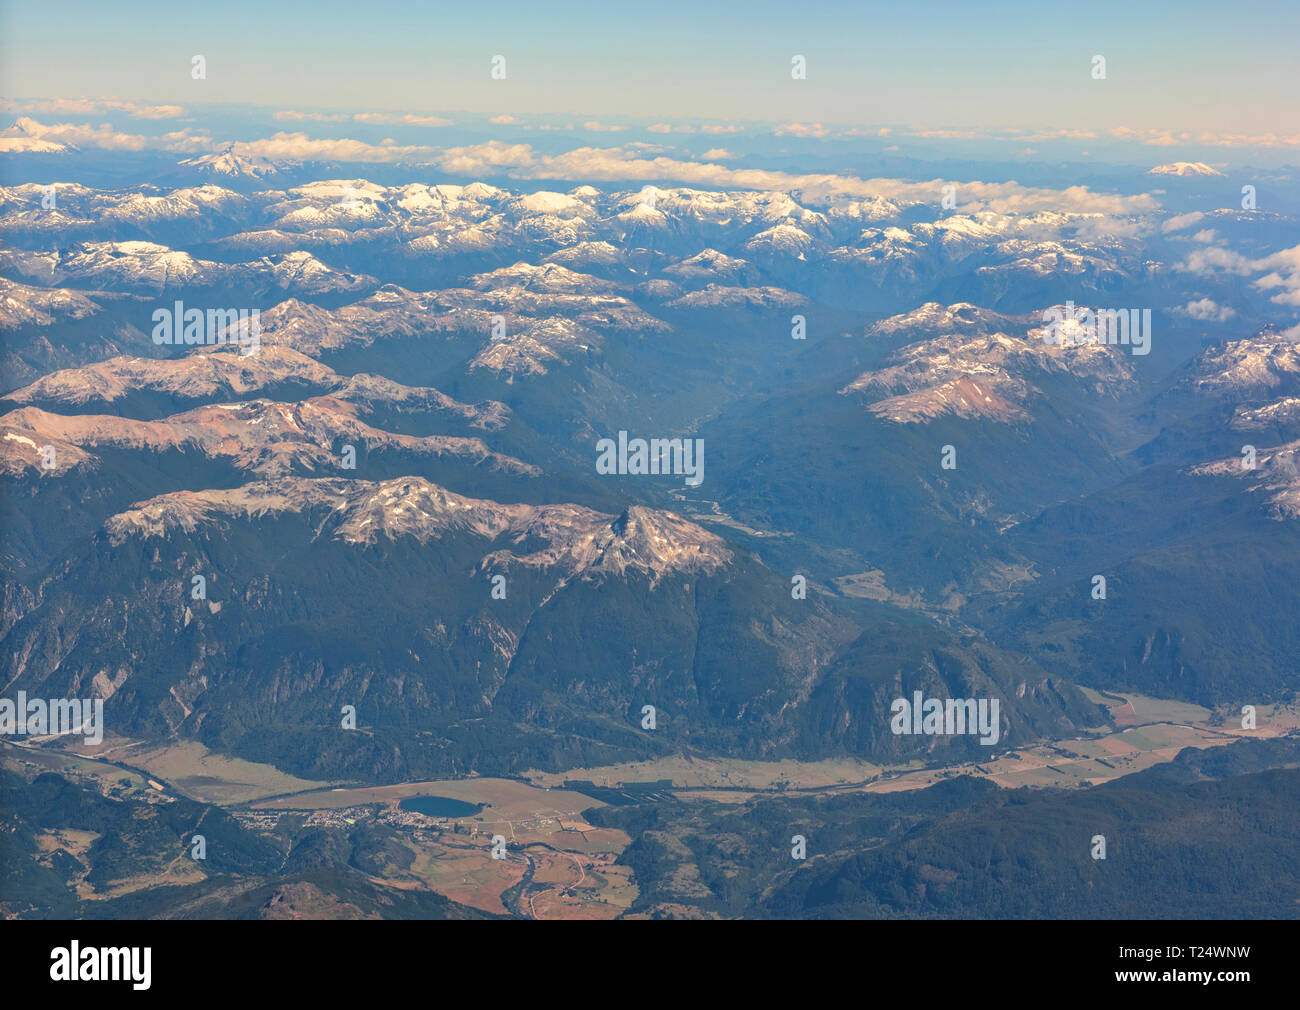 Aerial view of northern Patagonia, Coyhaique, Aysen, Patagonia, Chile - Stock Image